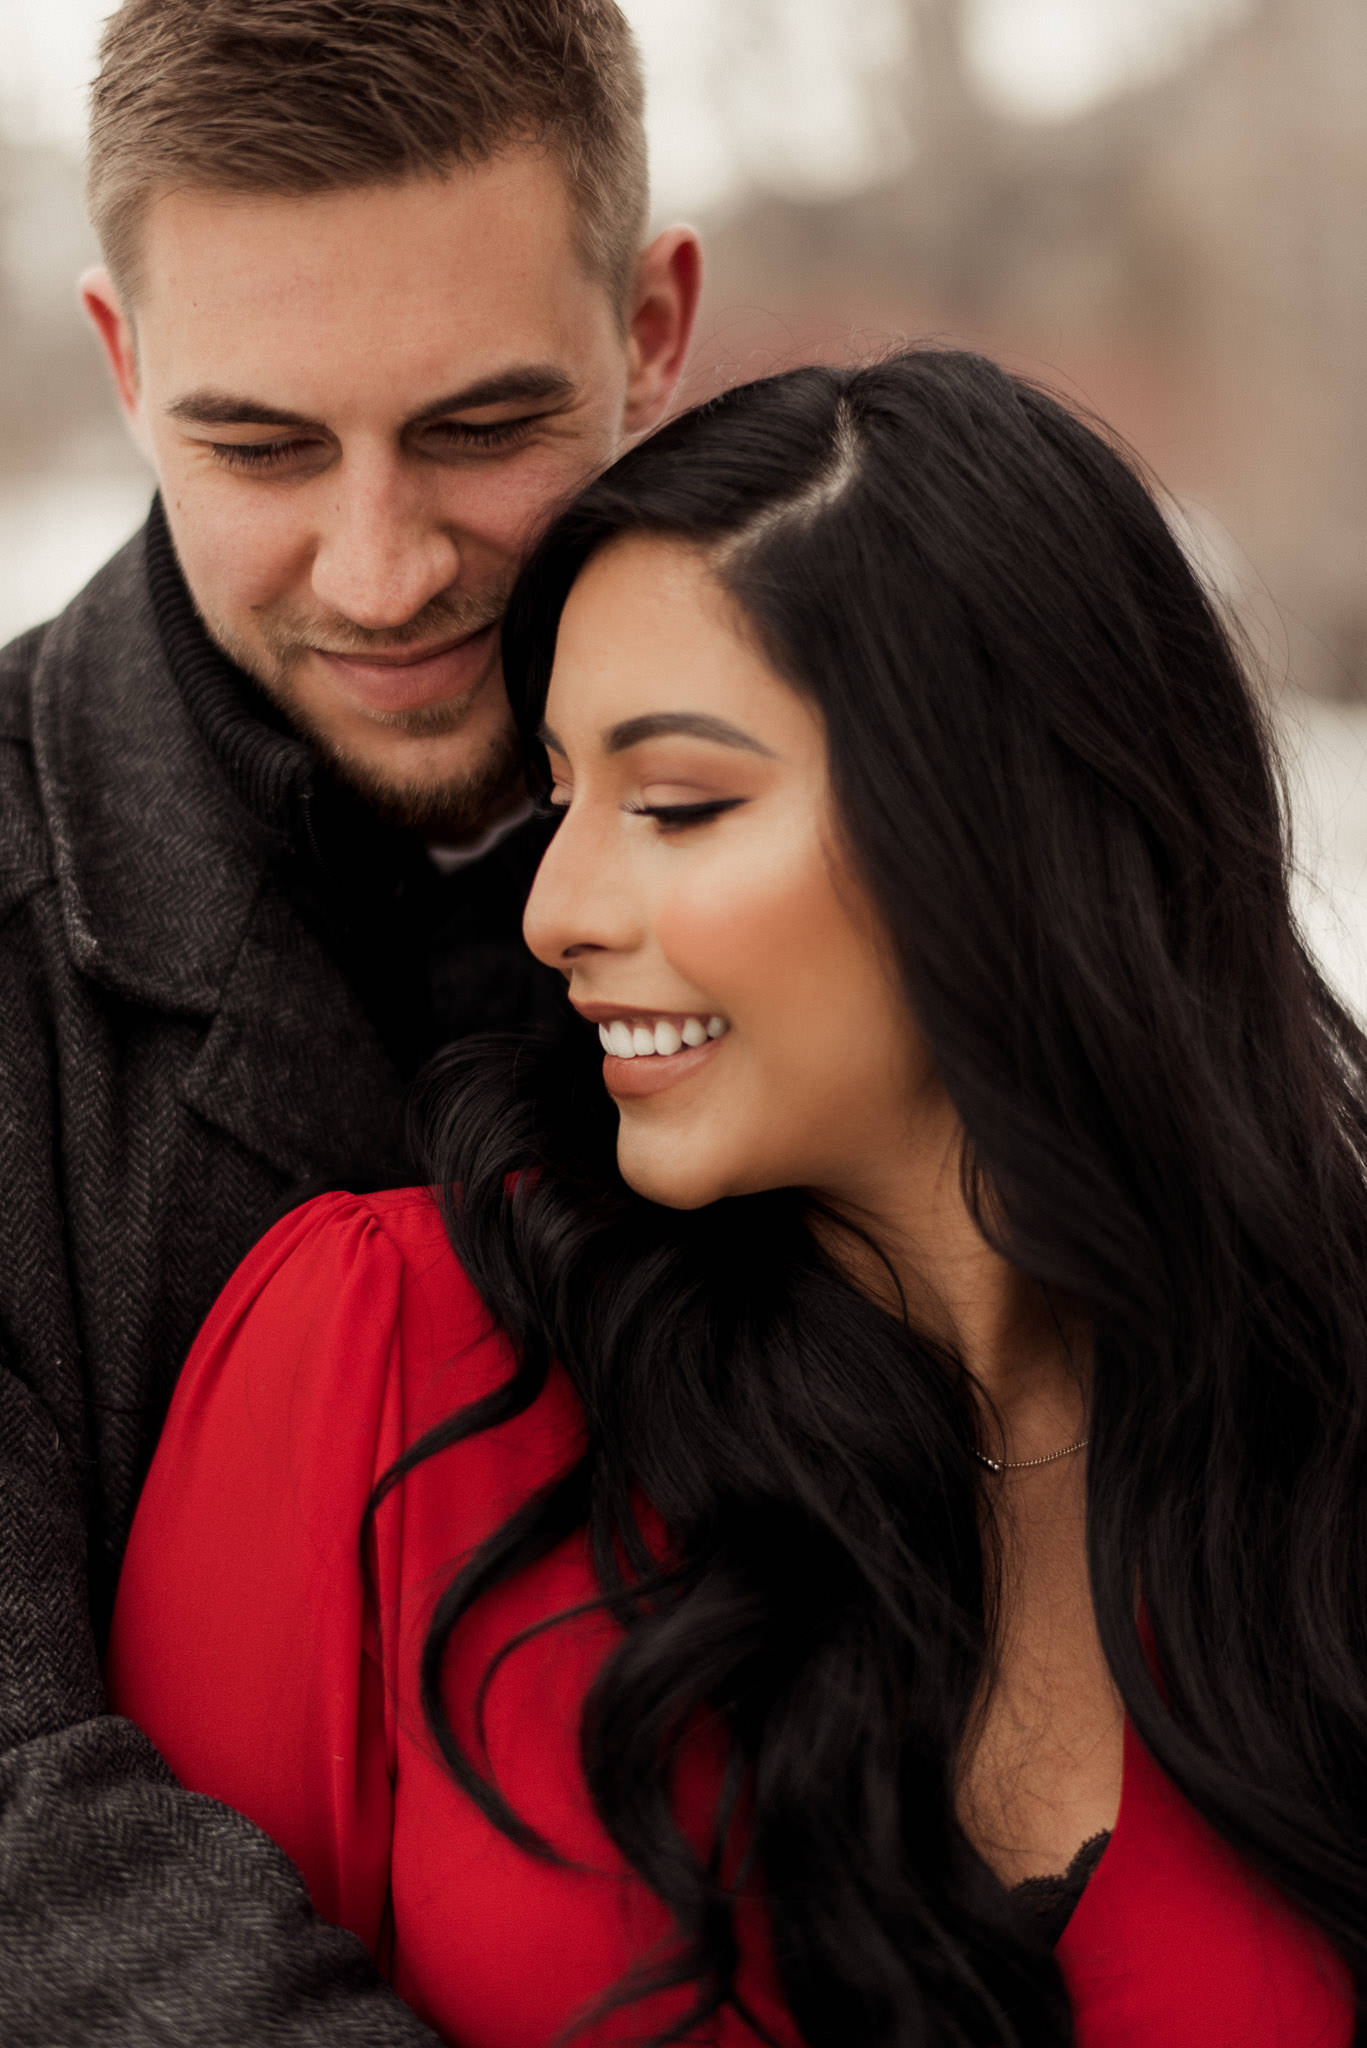 sandra-ryan-colorado-winter-snow-engagement-couples-valentines-red-houston-photographer-sm-21.jpg